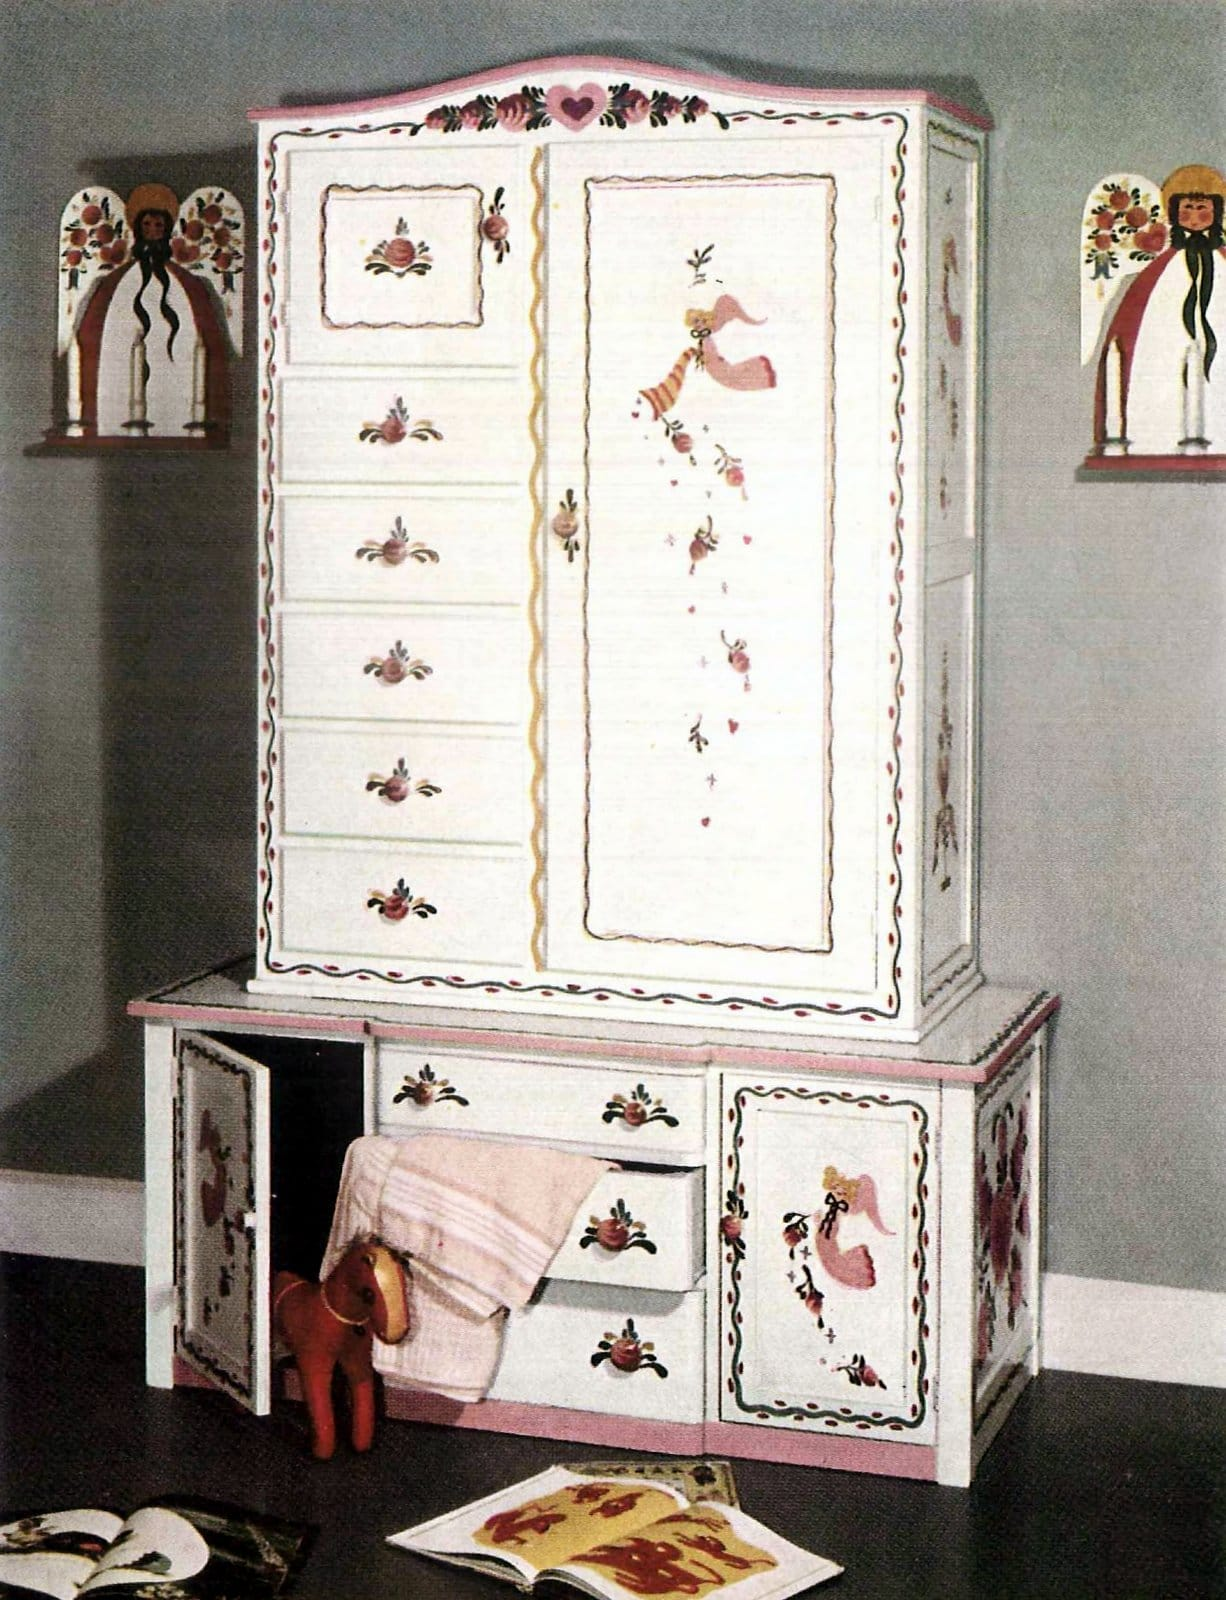 Renovated repainted antique furniture with decorative paintwork (1949)